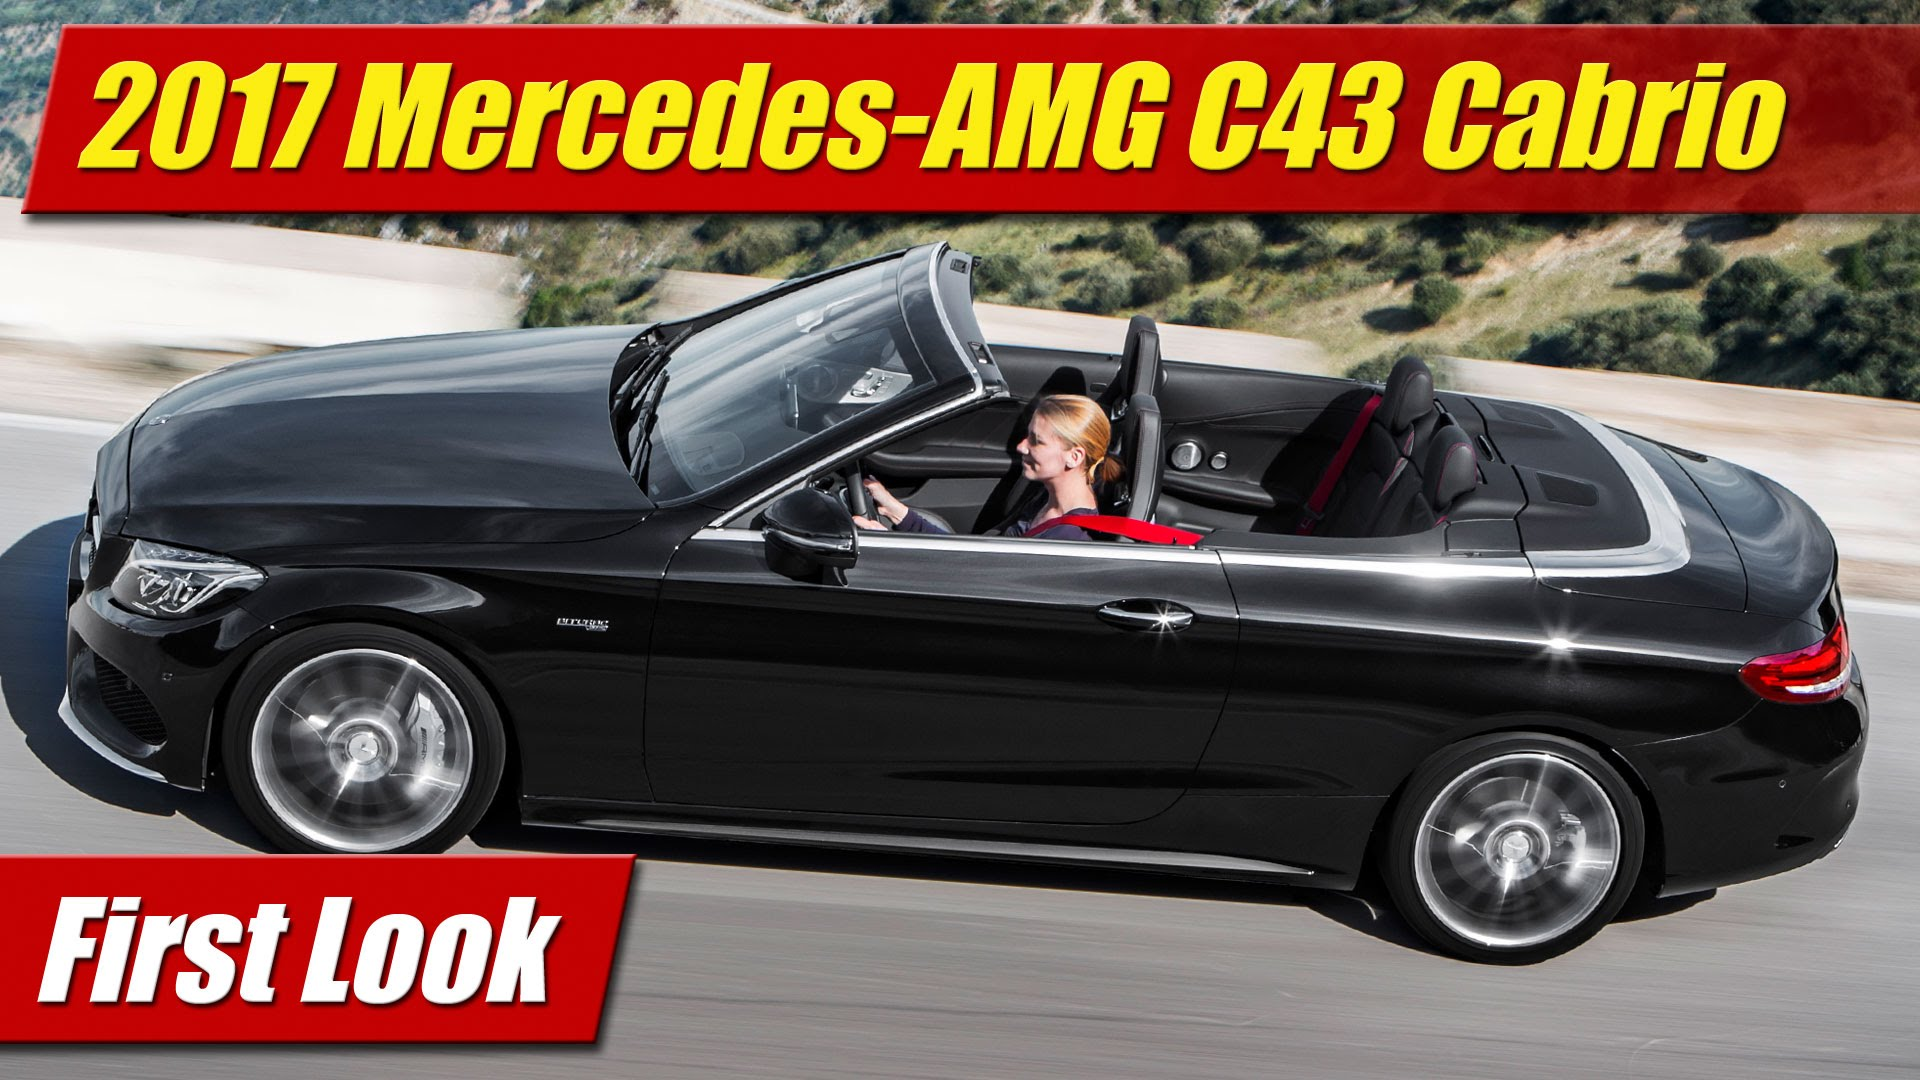 First Look 2017 Mercedes Amg C43 Cabriolet